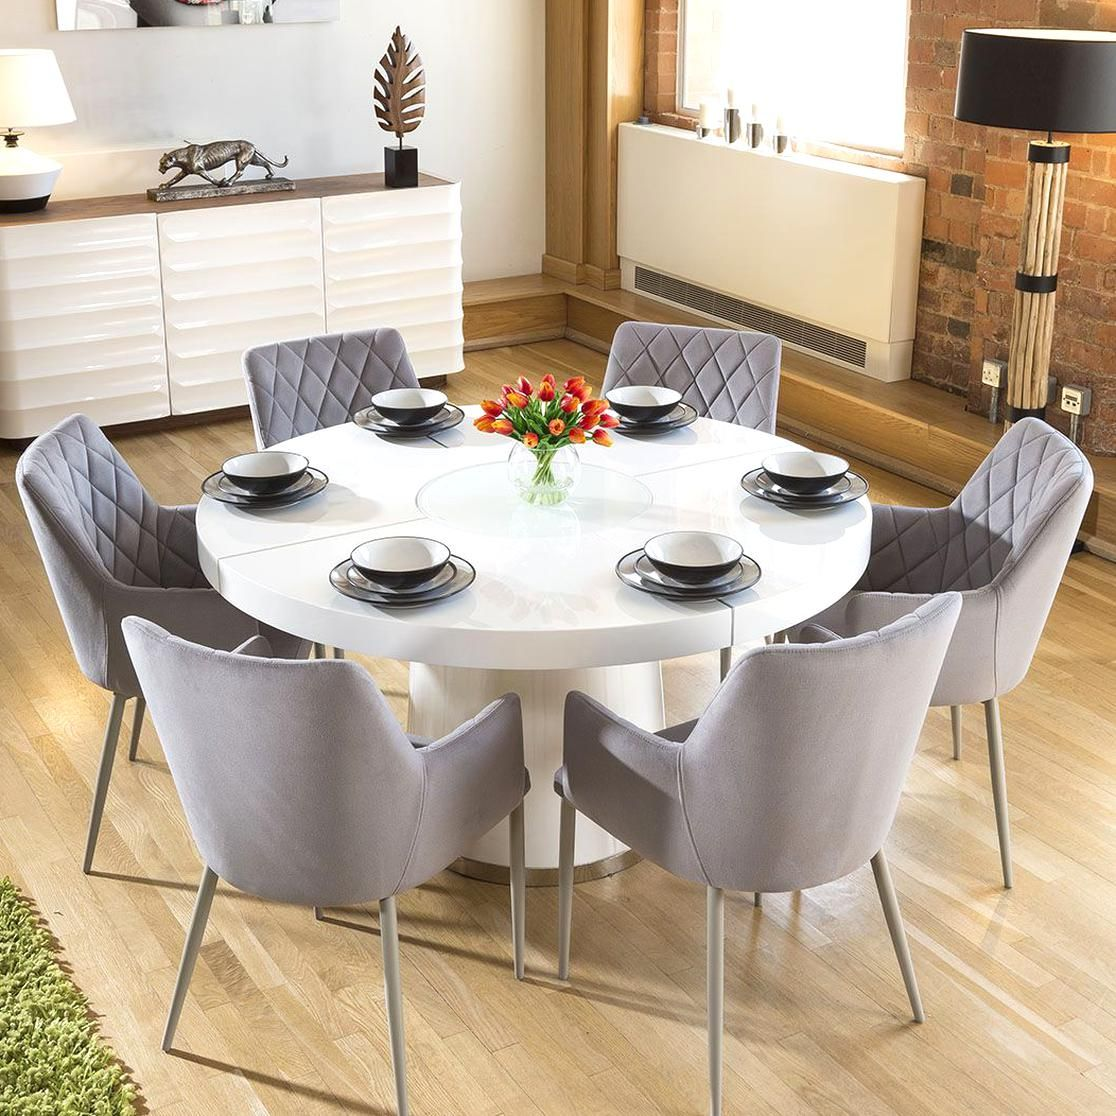 Large White Circular 14 Dining Table 6 Ice Grey Carver Chairs In 2020 Round Dining Table Round Dining Table Sets White Round Dining Table